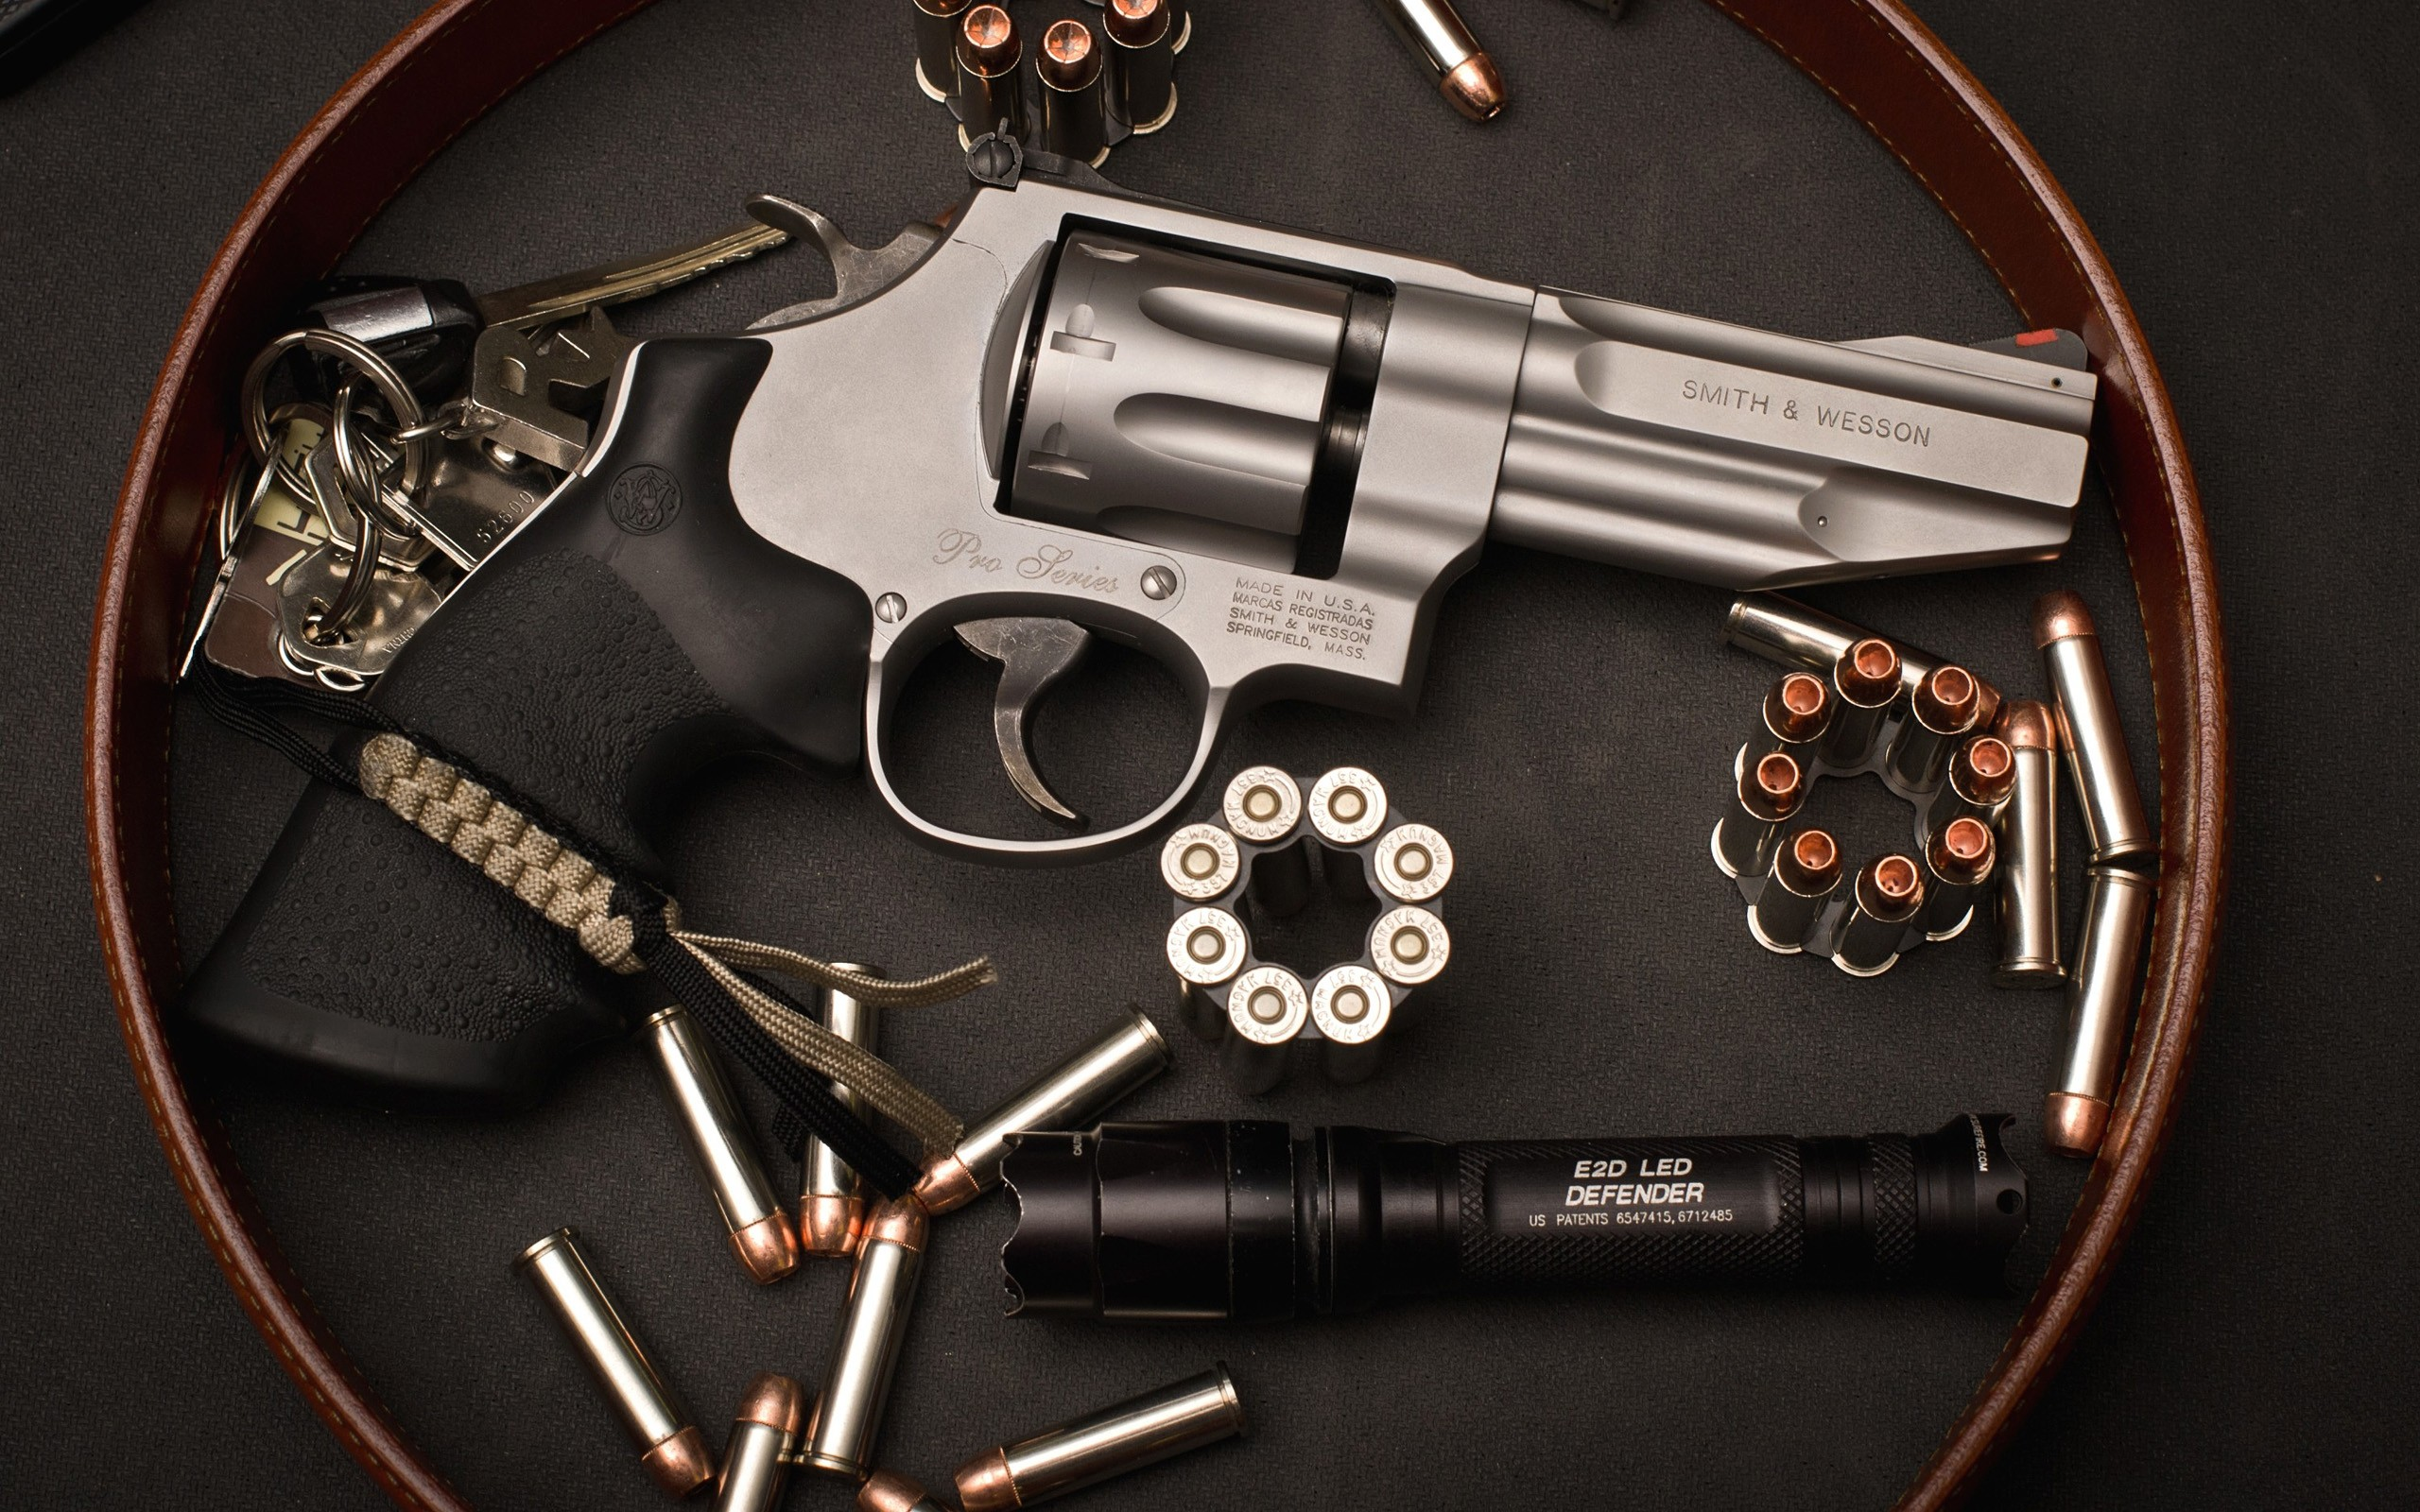 Smith Wesson Revolver Computer Wallpapers Desktop Backgrounds 2560x1600